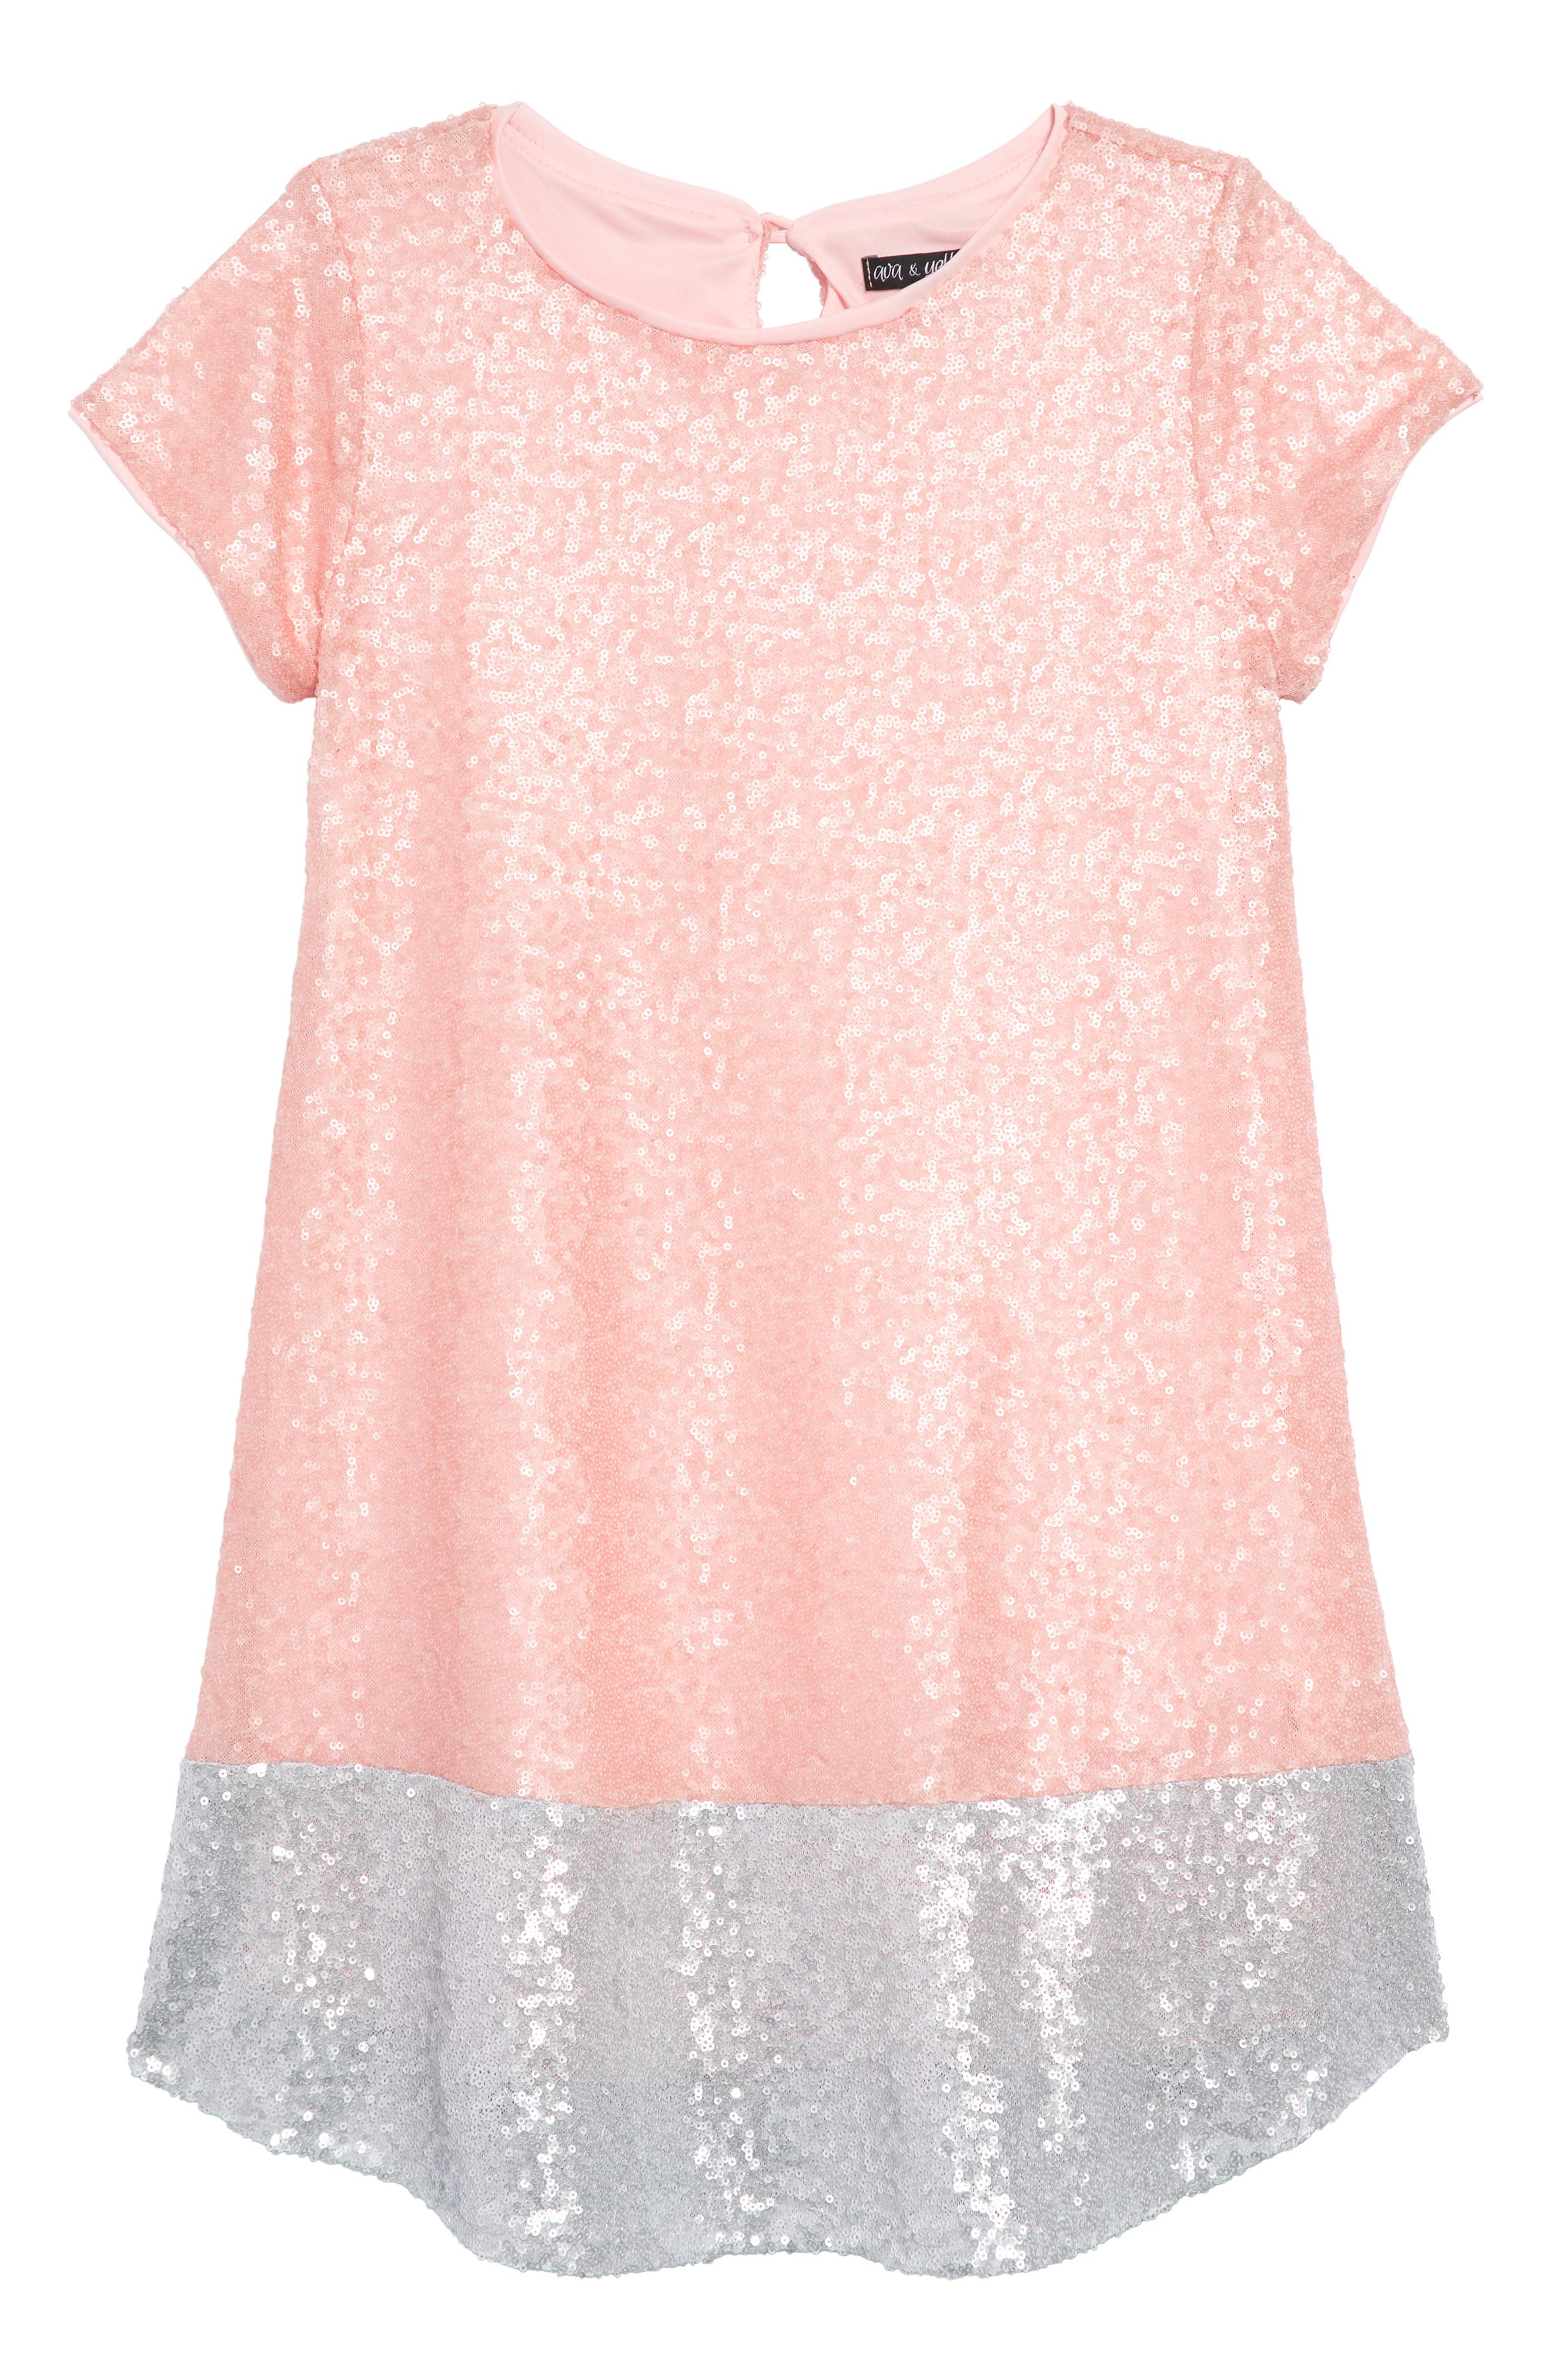 Ava & Yelly Sequin Shift Dress (Little Girls)